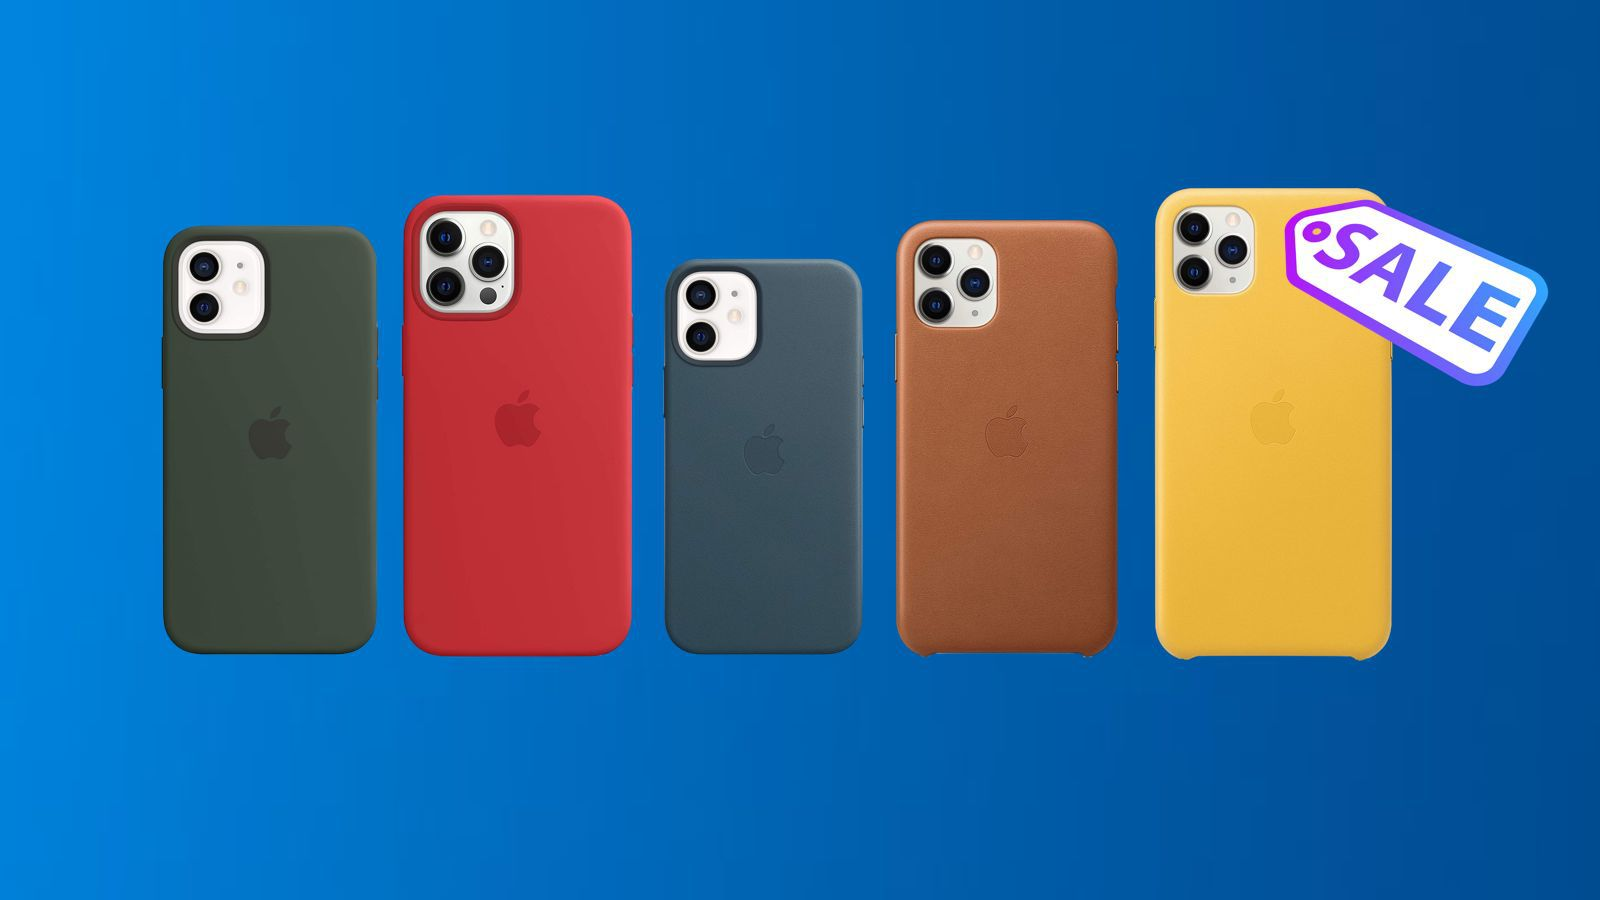 Deals: Not Upgrading to iPhone 13? Amazon Has Apple's Official iPhone 11 and iPhone 12 Cases for Up to $30 Off